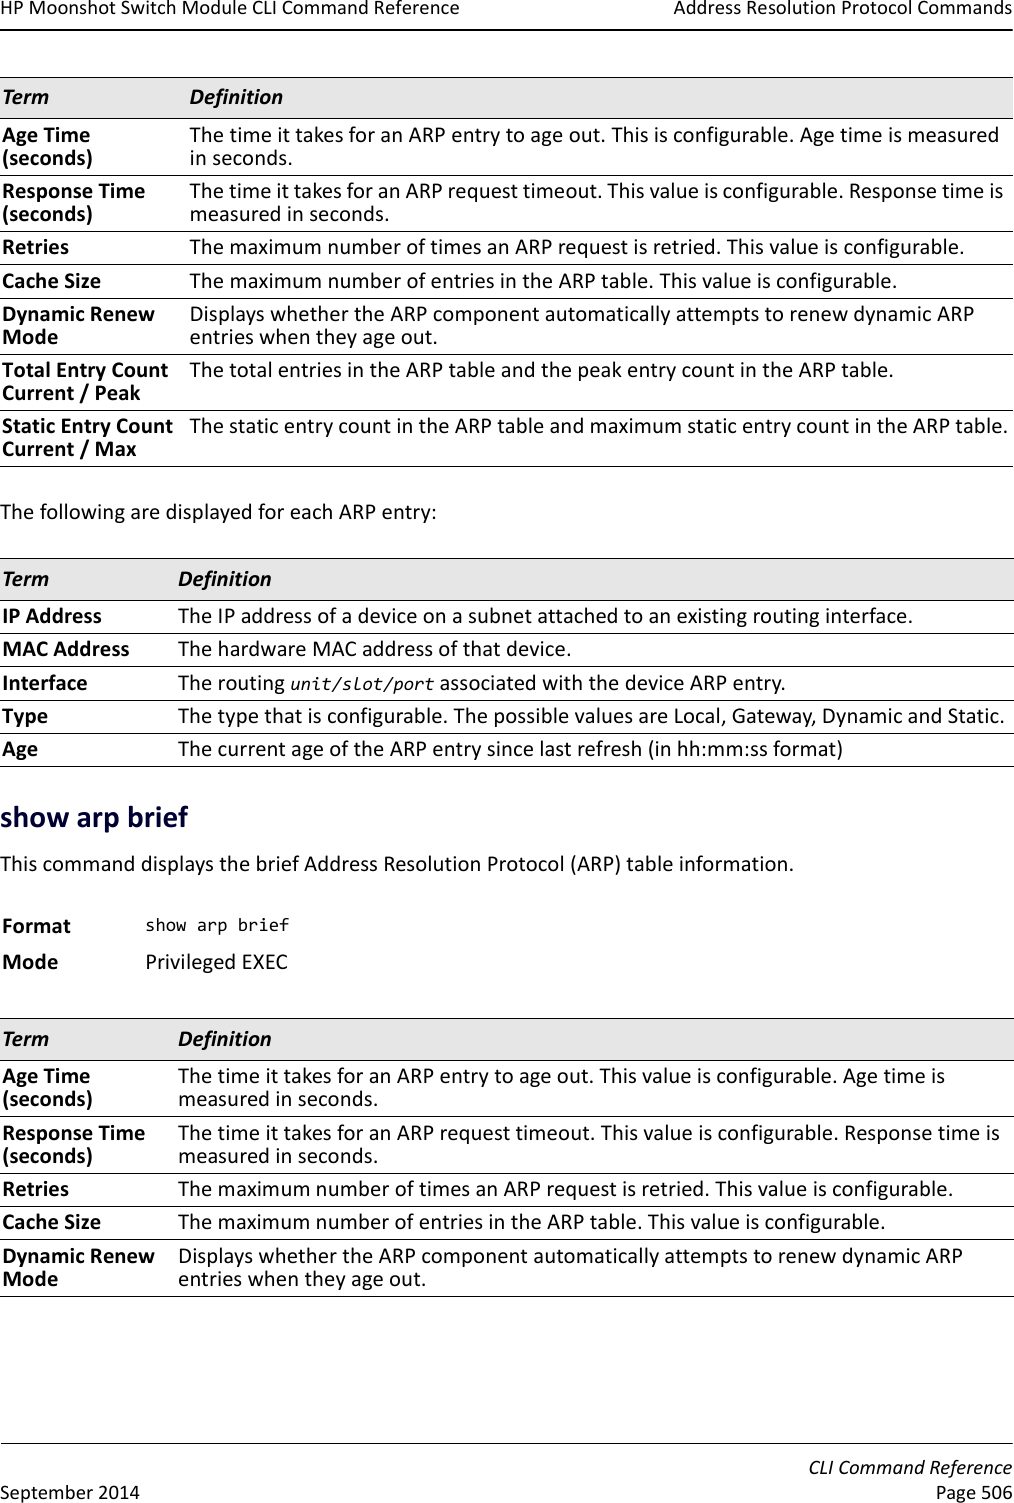 Hp Moonshot 45G Switch Module Command Reference Guide 45G